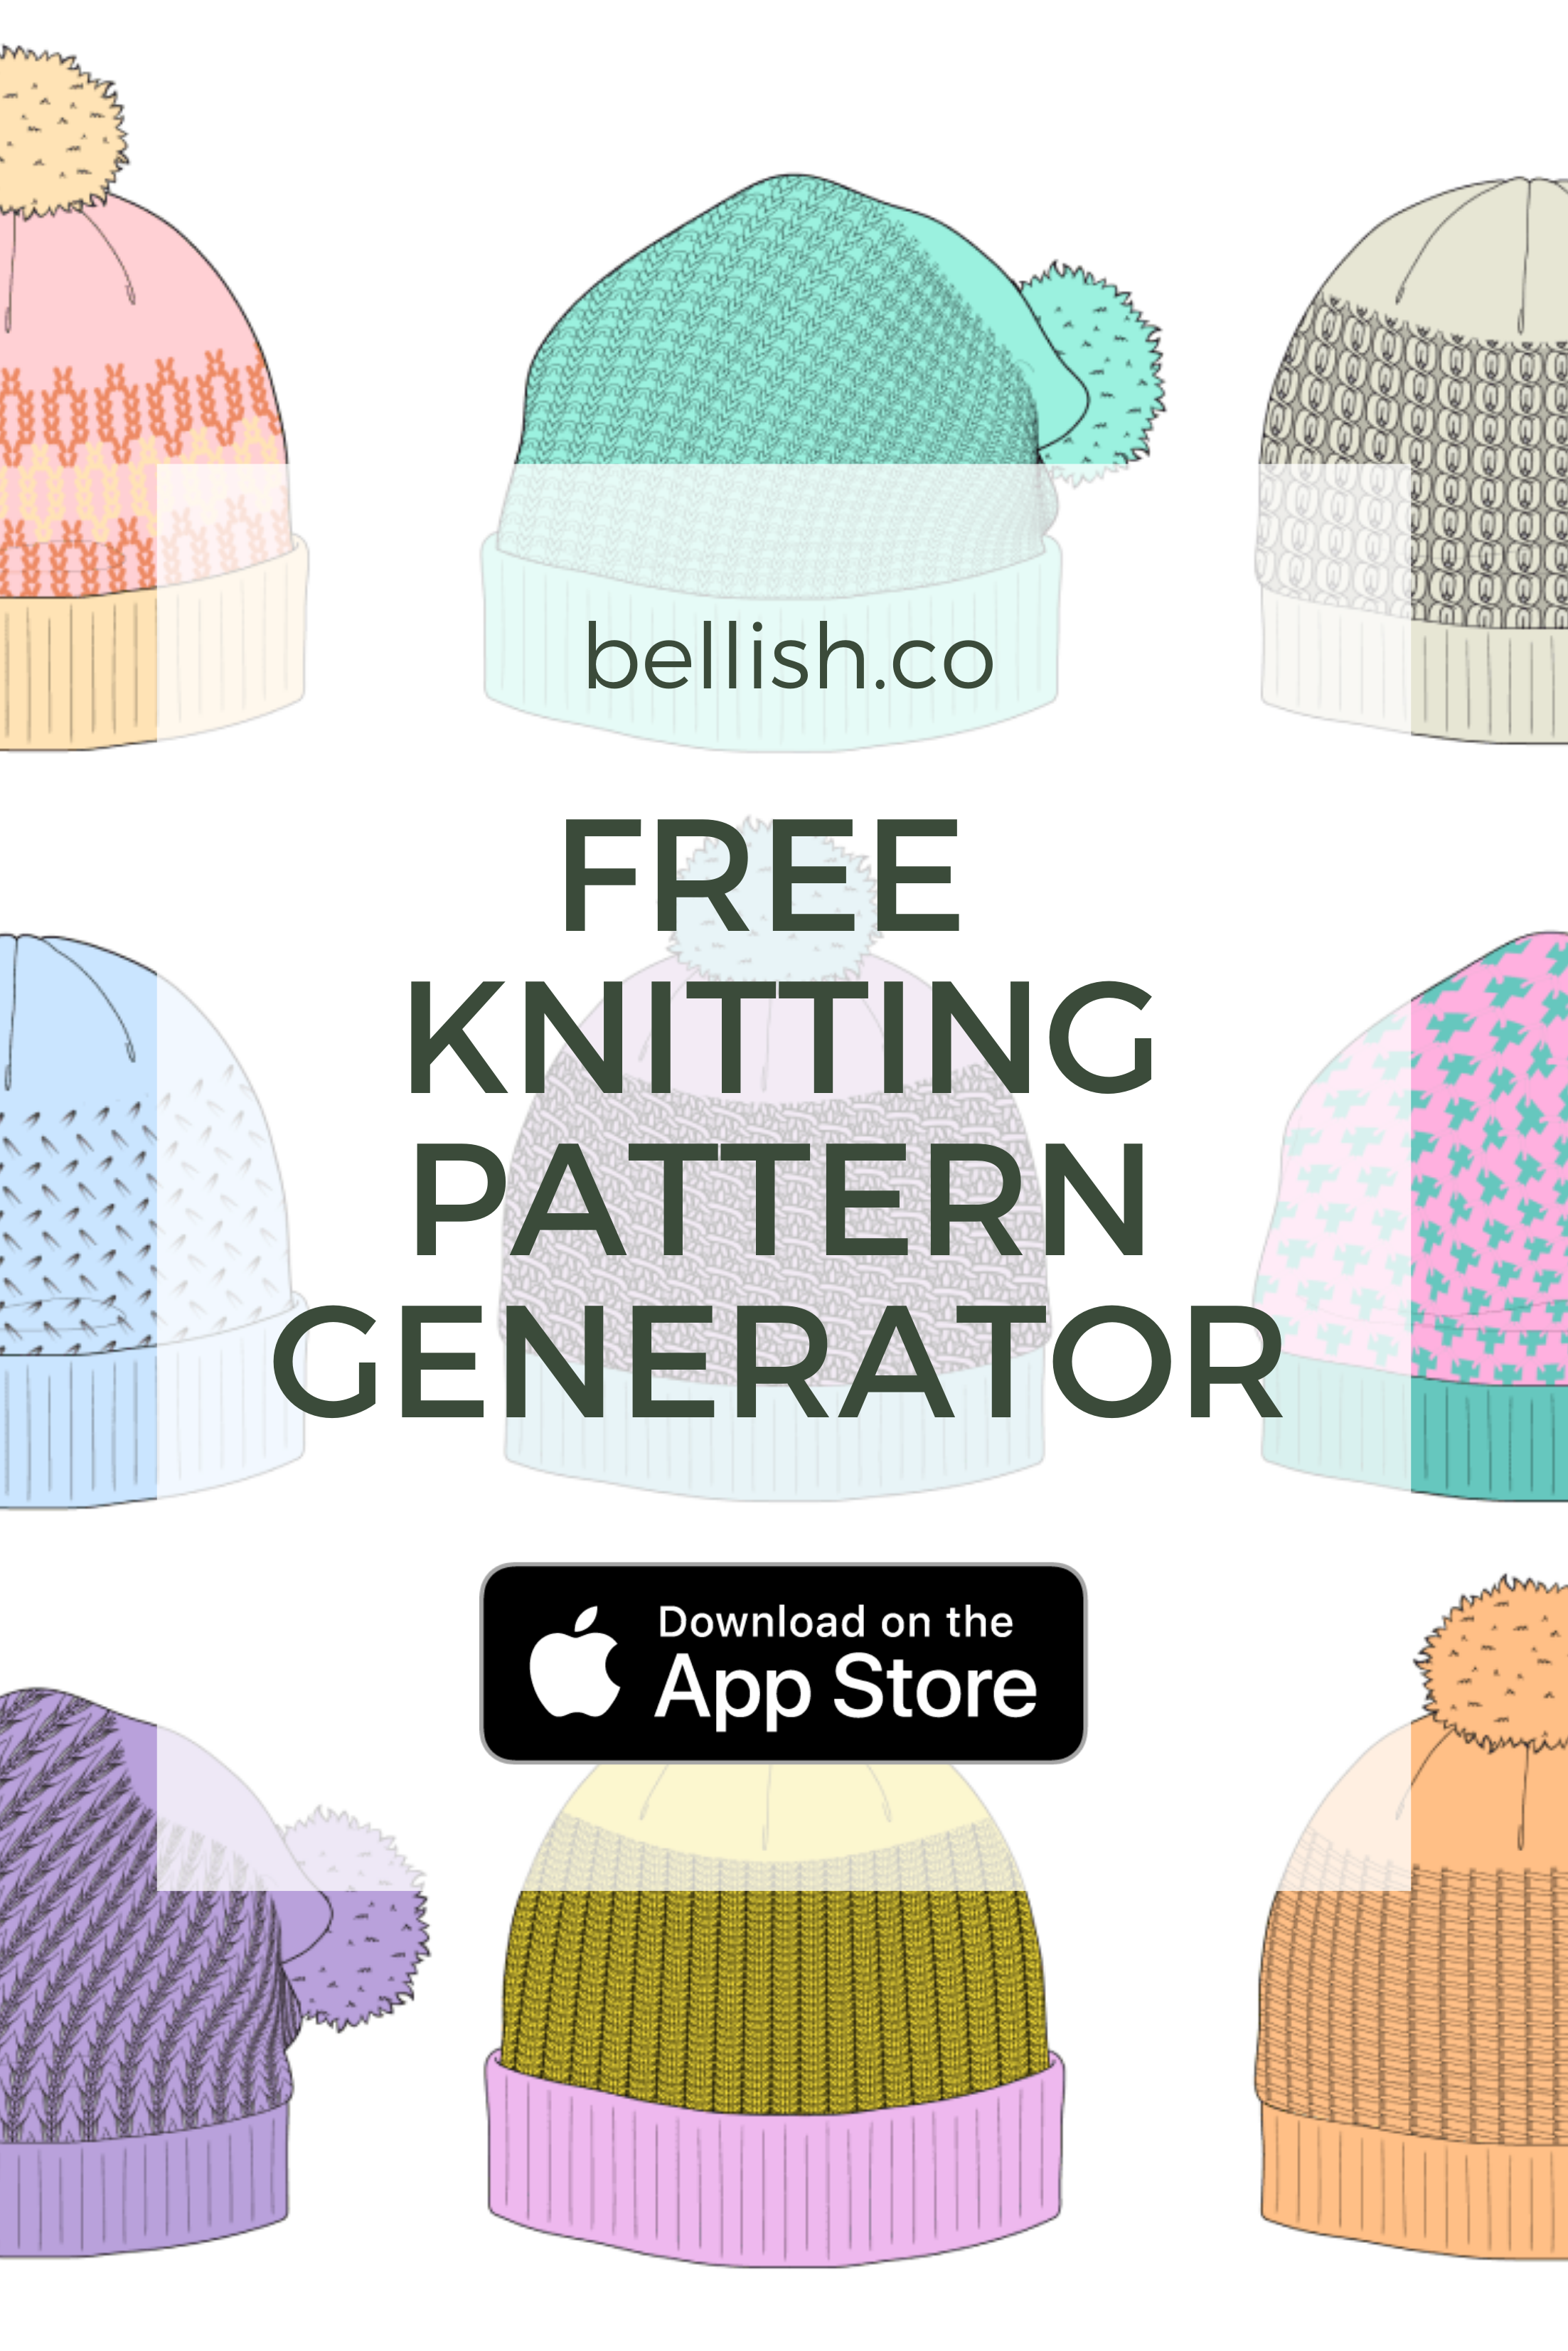 Personalize your next sweater with the free knitting pattern ... | 3306x2205